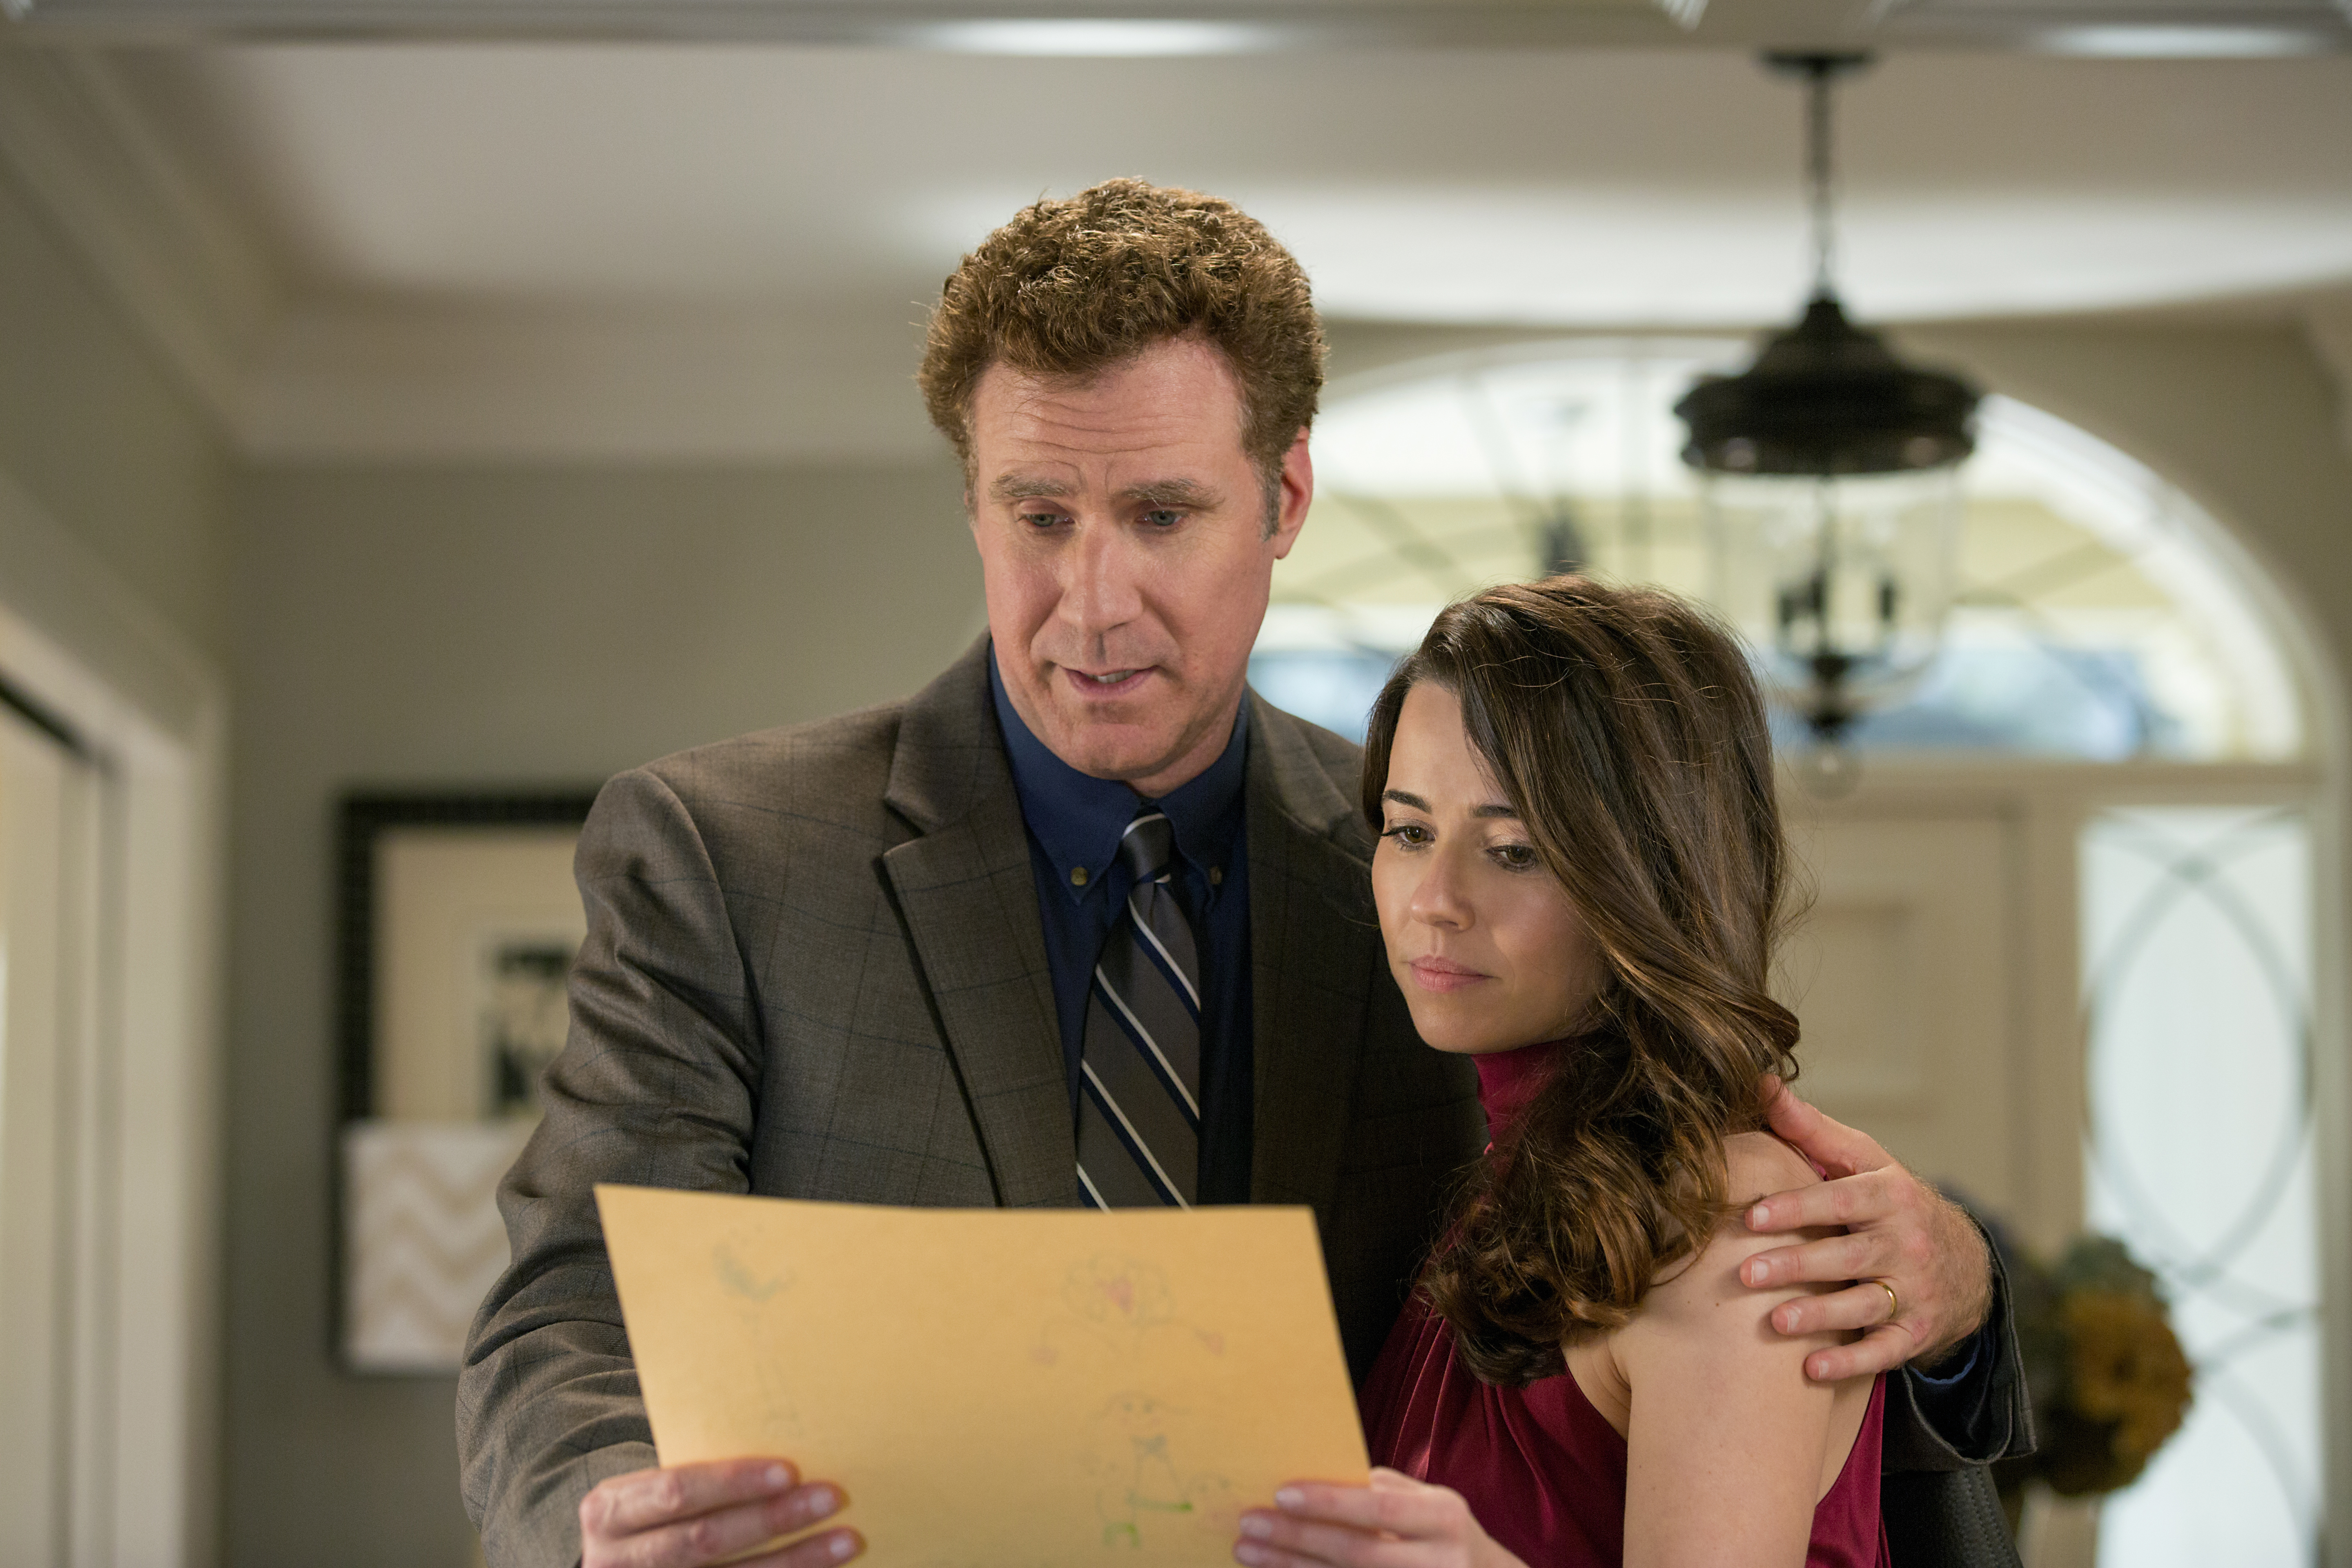 From left: Will Ferrell and Linda Cardellini in Daddy's Home.